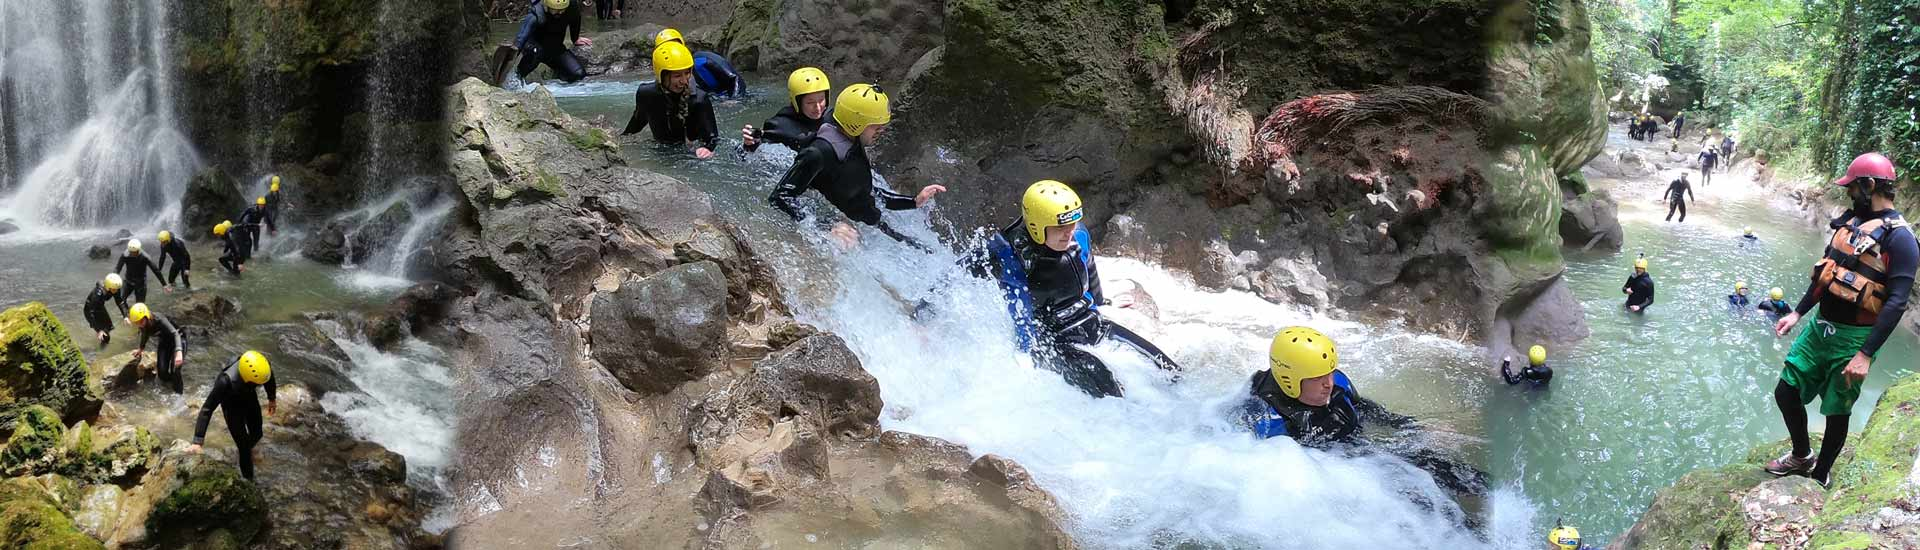 River Walking presso Rafting Marmore in Umbria